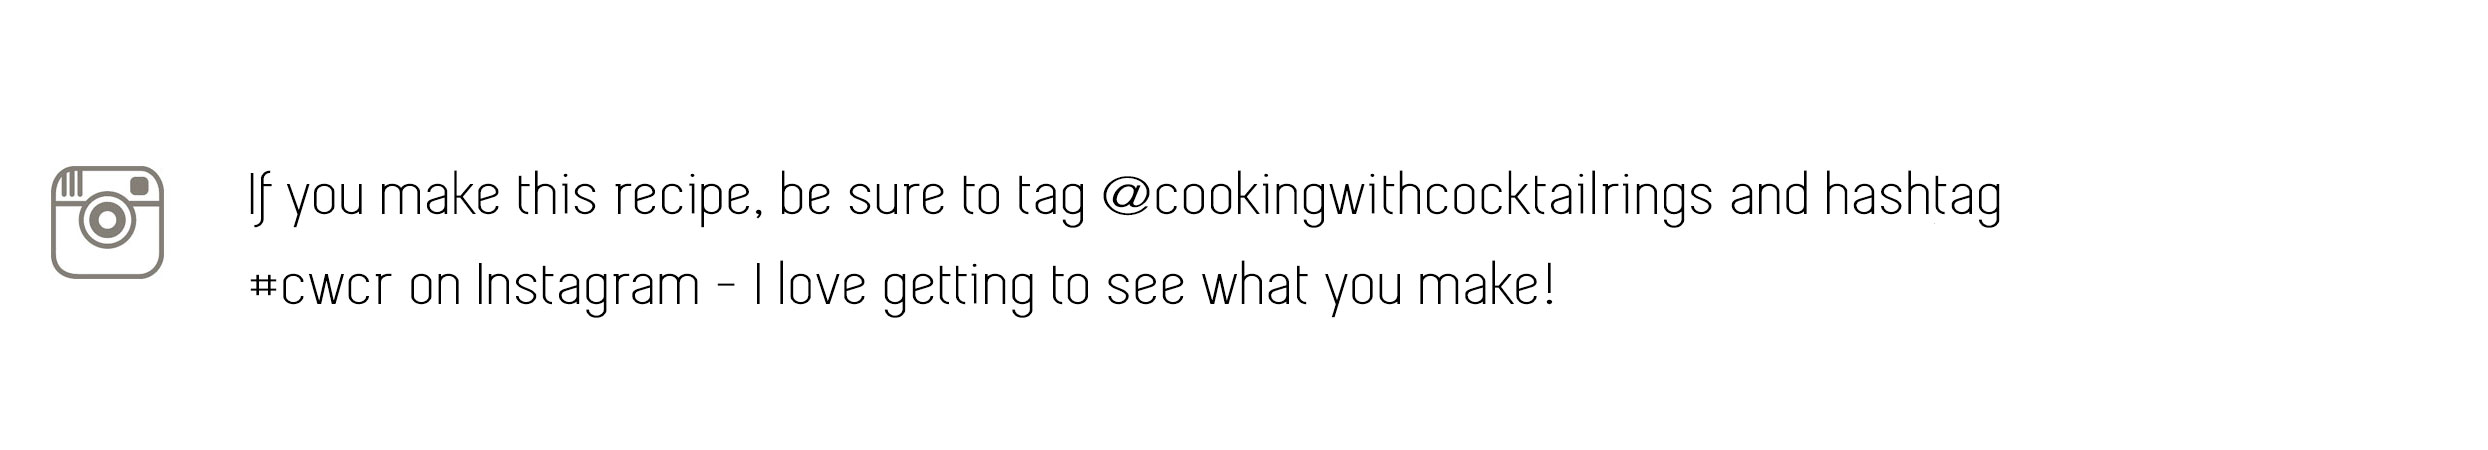 instagram @cookingwtihcocktailrings